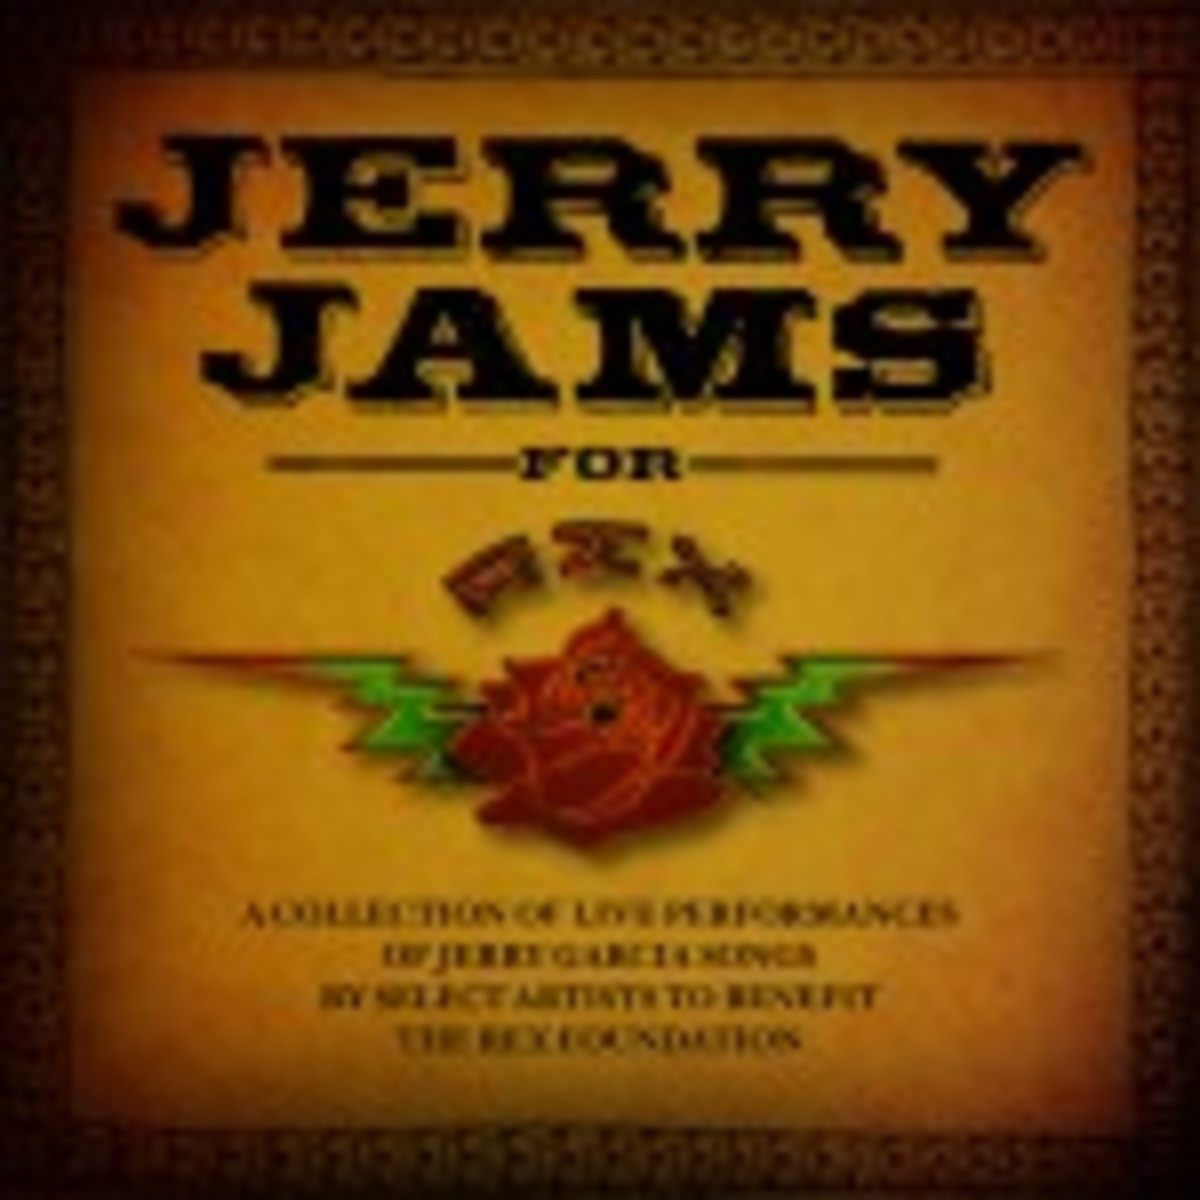 Jerry Jams cover